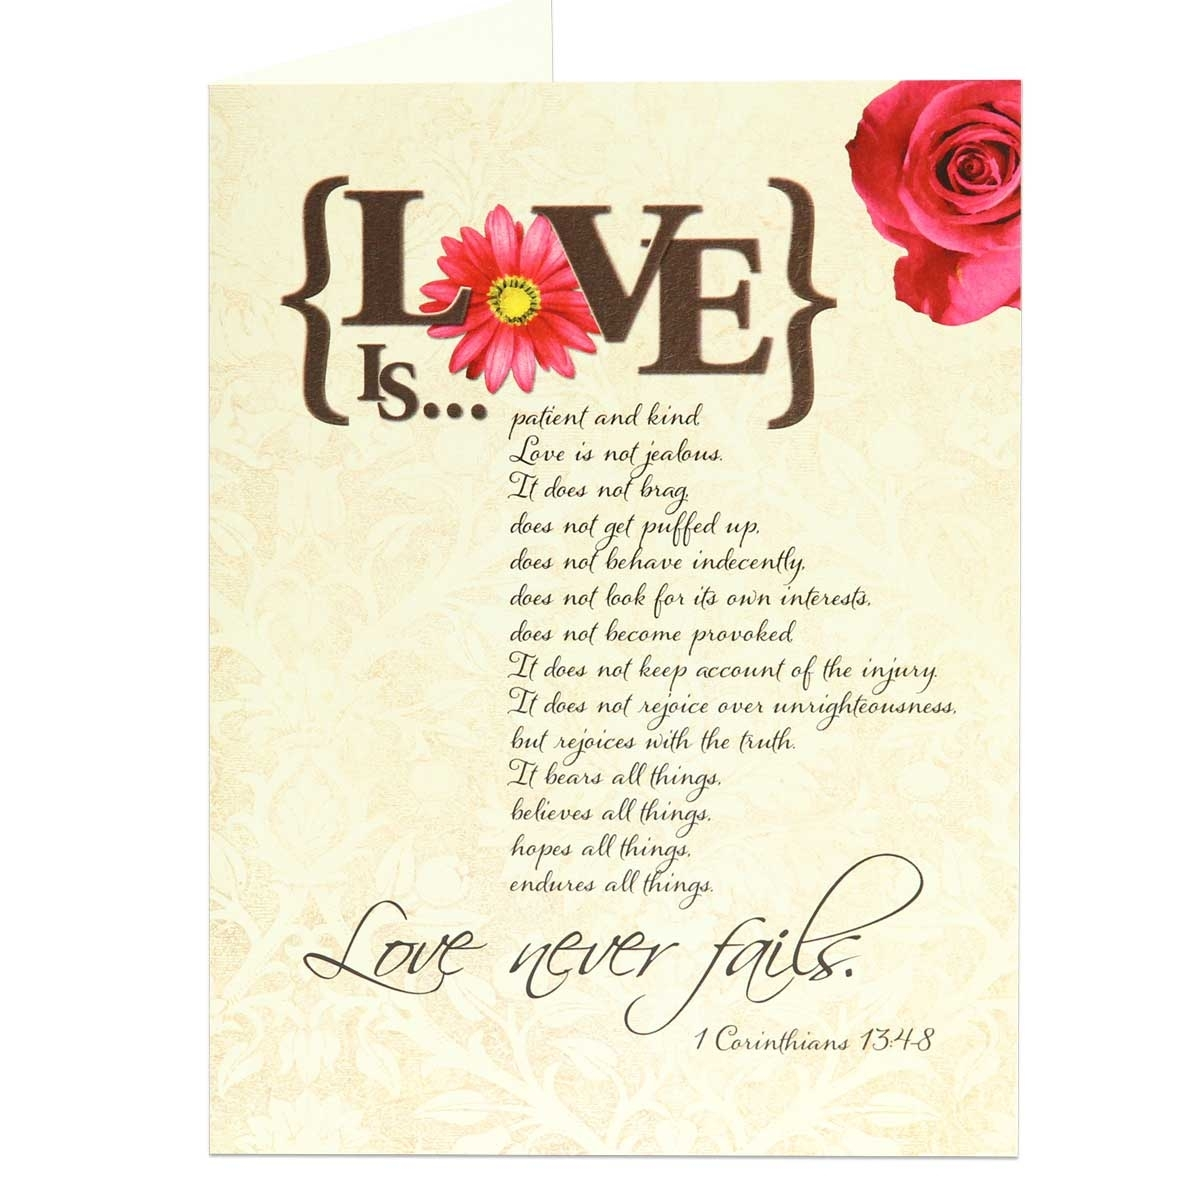 I love you pack assorted weddinganniversary greeting cards retail kristyandbryce Choice Image